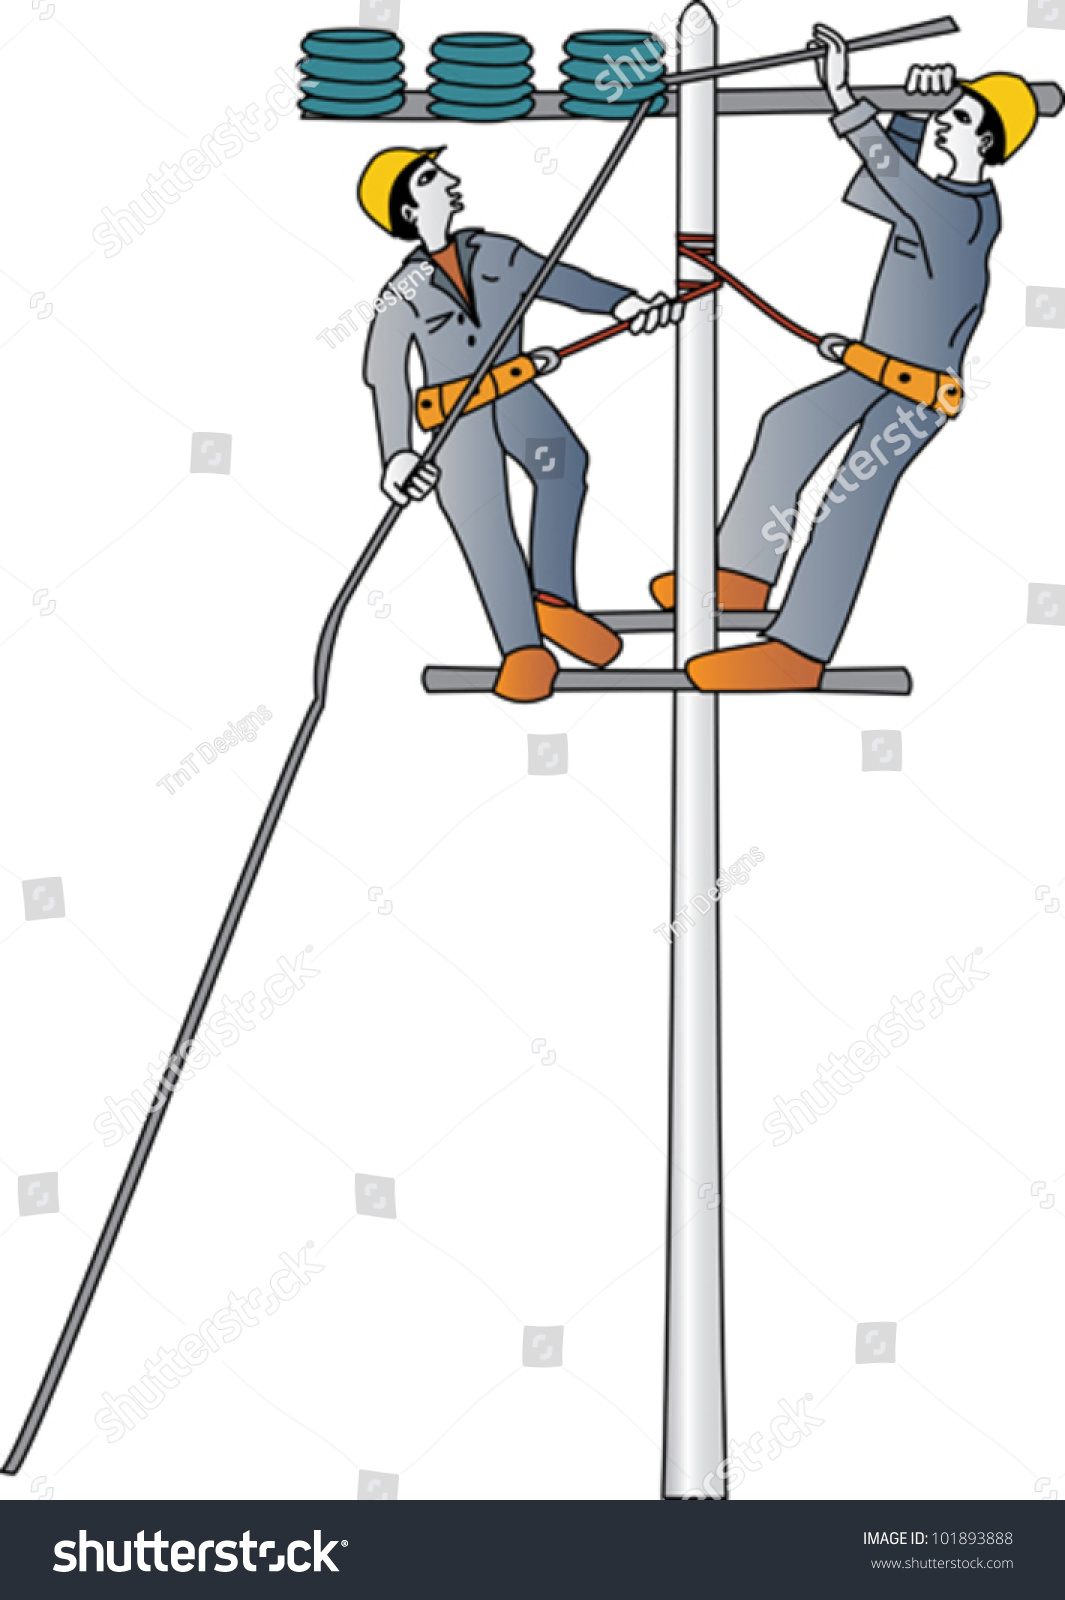 Electricians Repairing High Voltage Electrical Wire Stock Vector ...